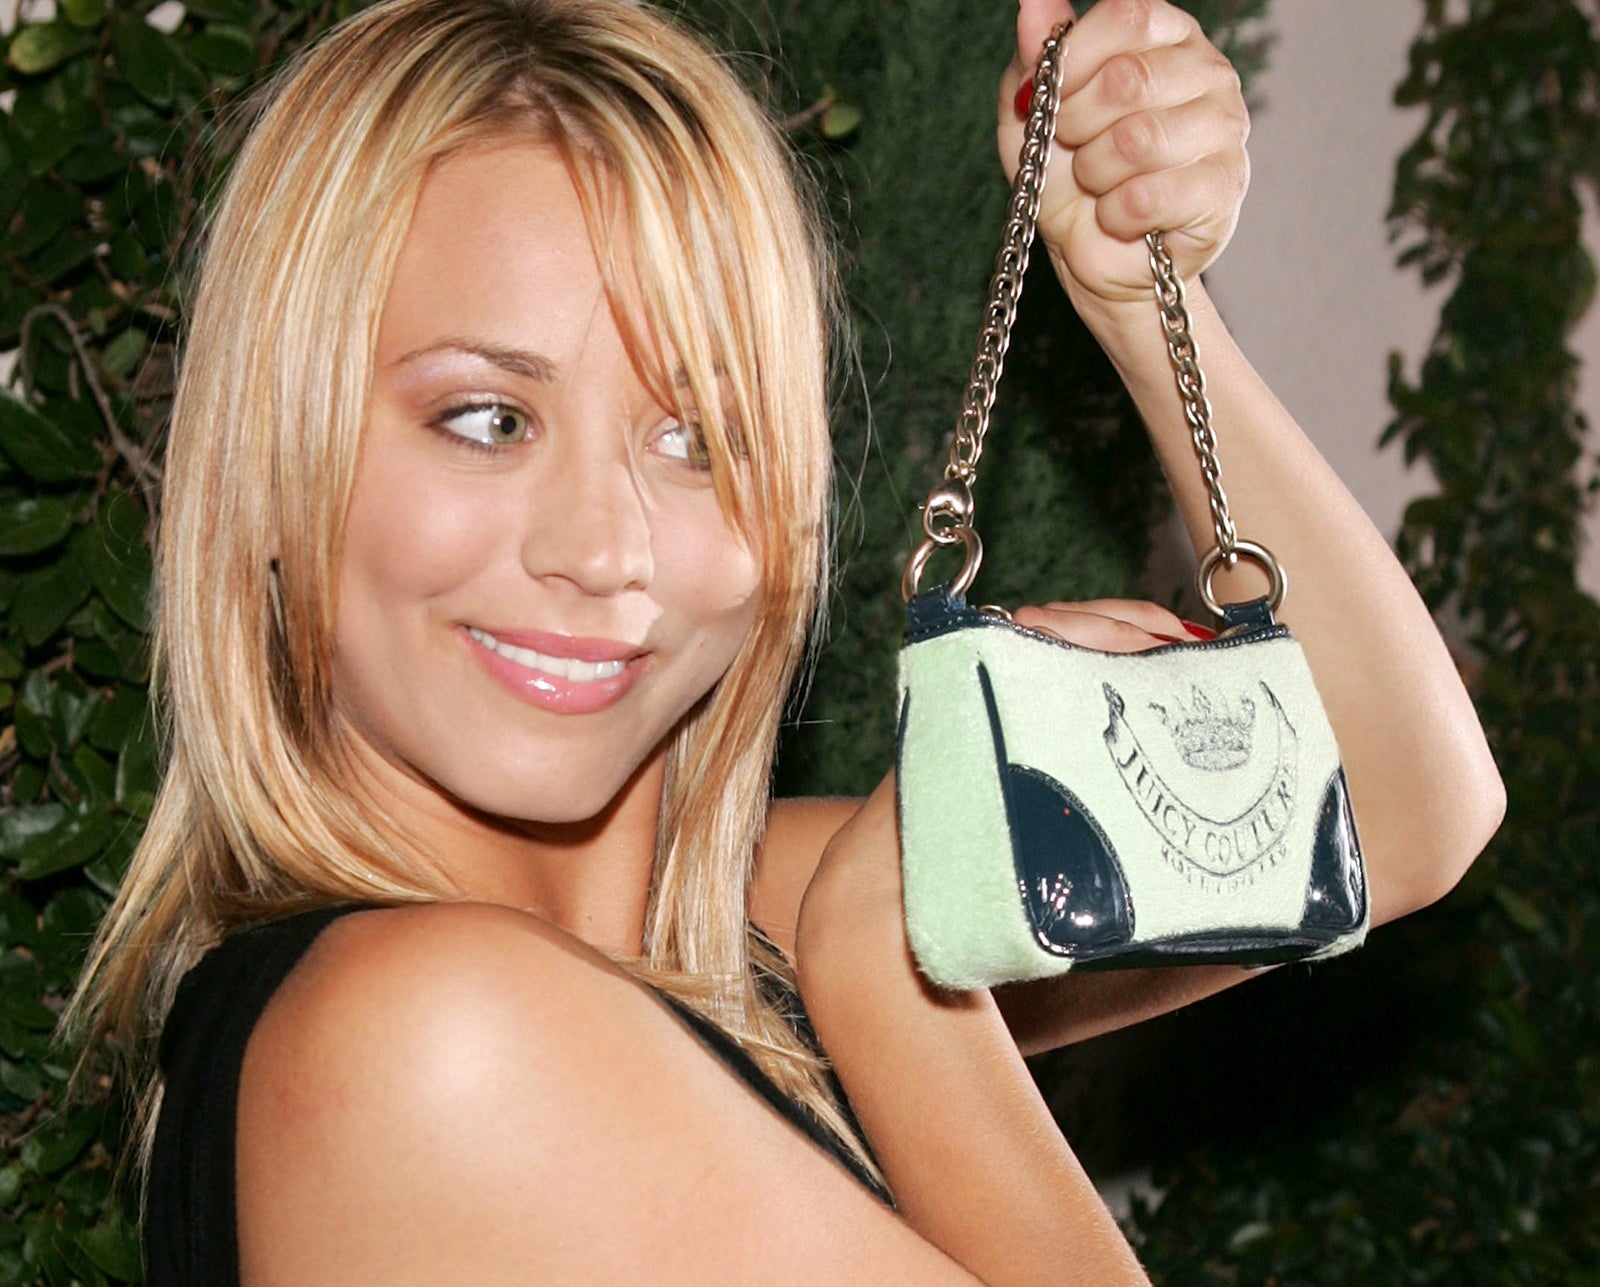 Those purses could barely fit your keys and a lipgloss. They were also pretty uncomfortable being right underneath your armpit (especially if you were wearing something without sleeves).